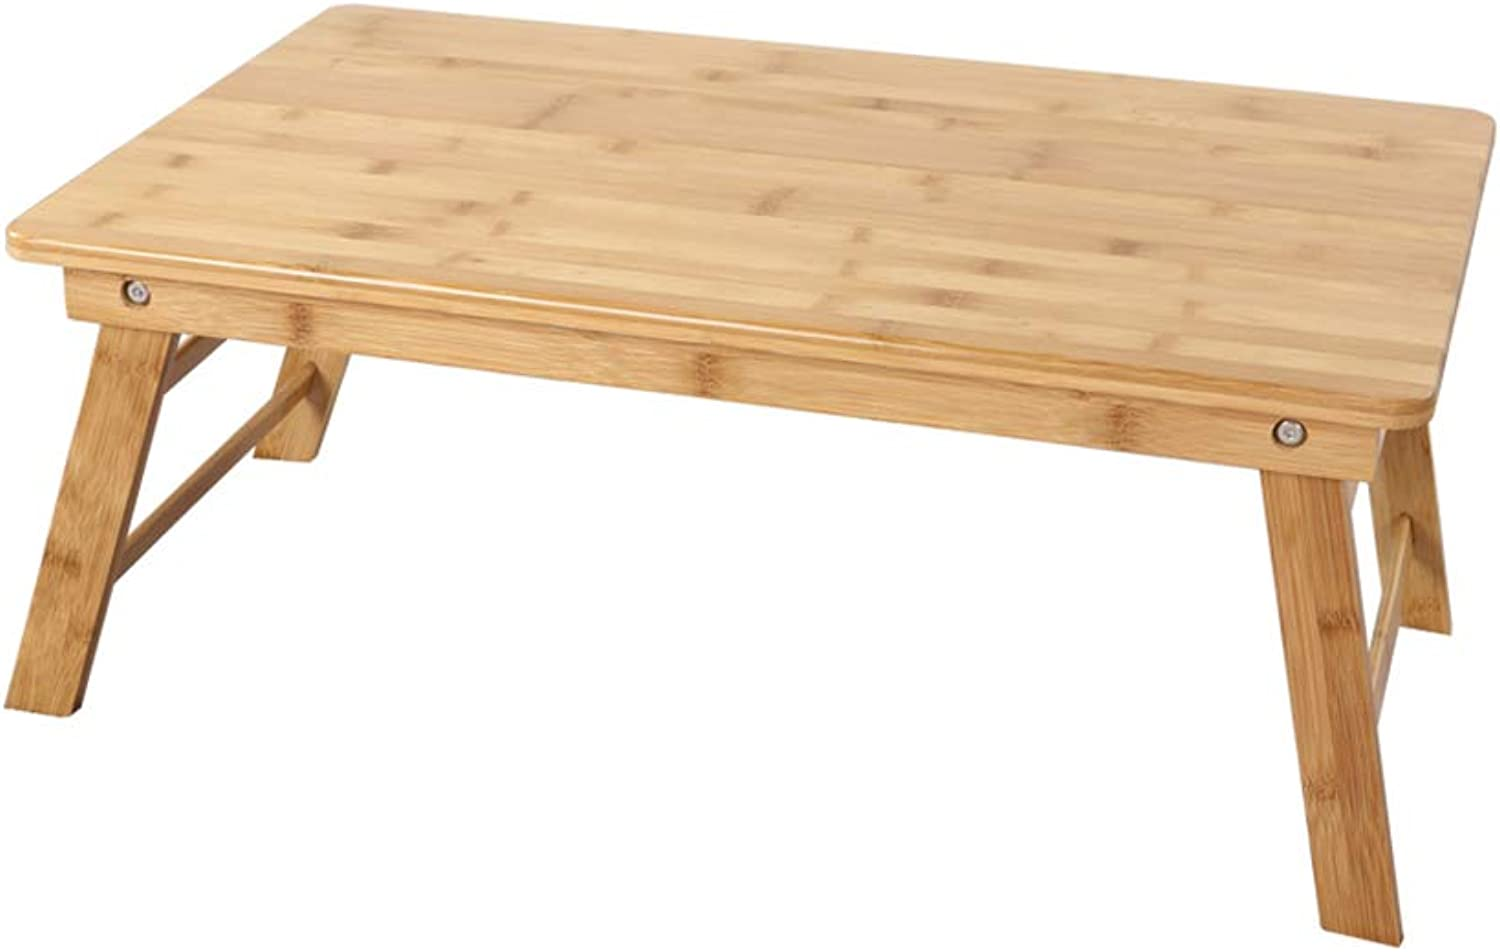 Folding Table Bamboo Lazy Folding Bed Small Desk Computer Table Dormitory Artifact (Size   55x31x20cm)